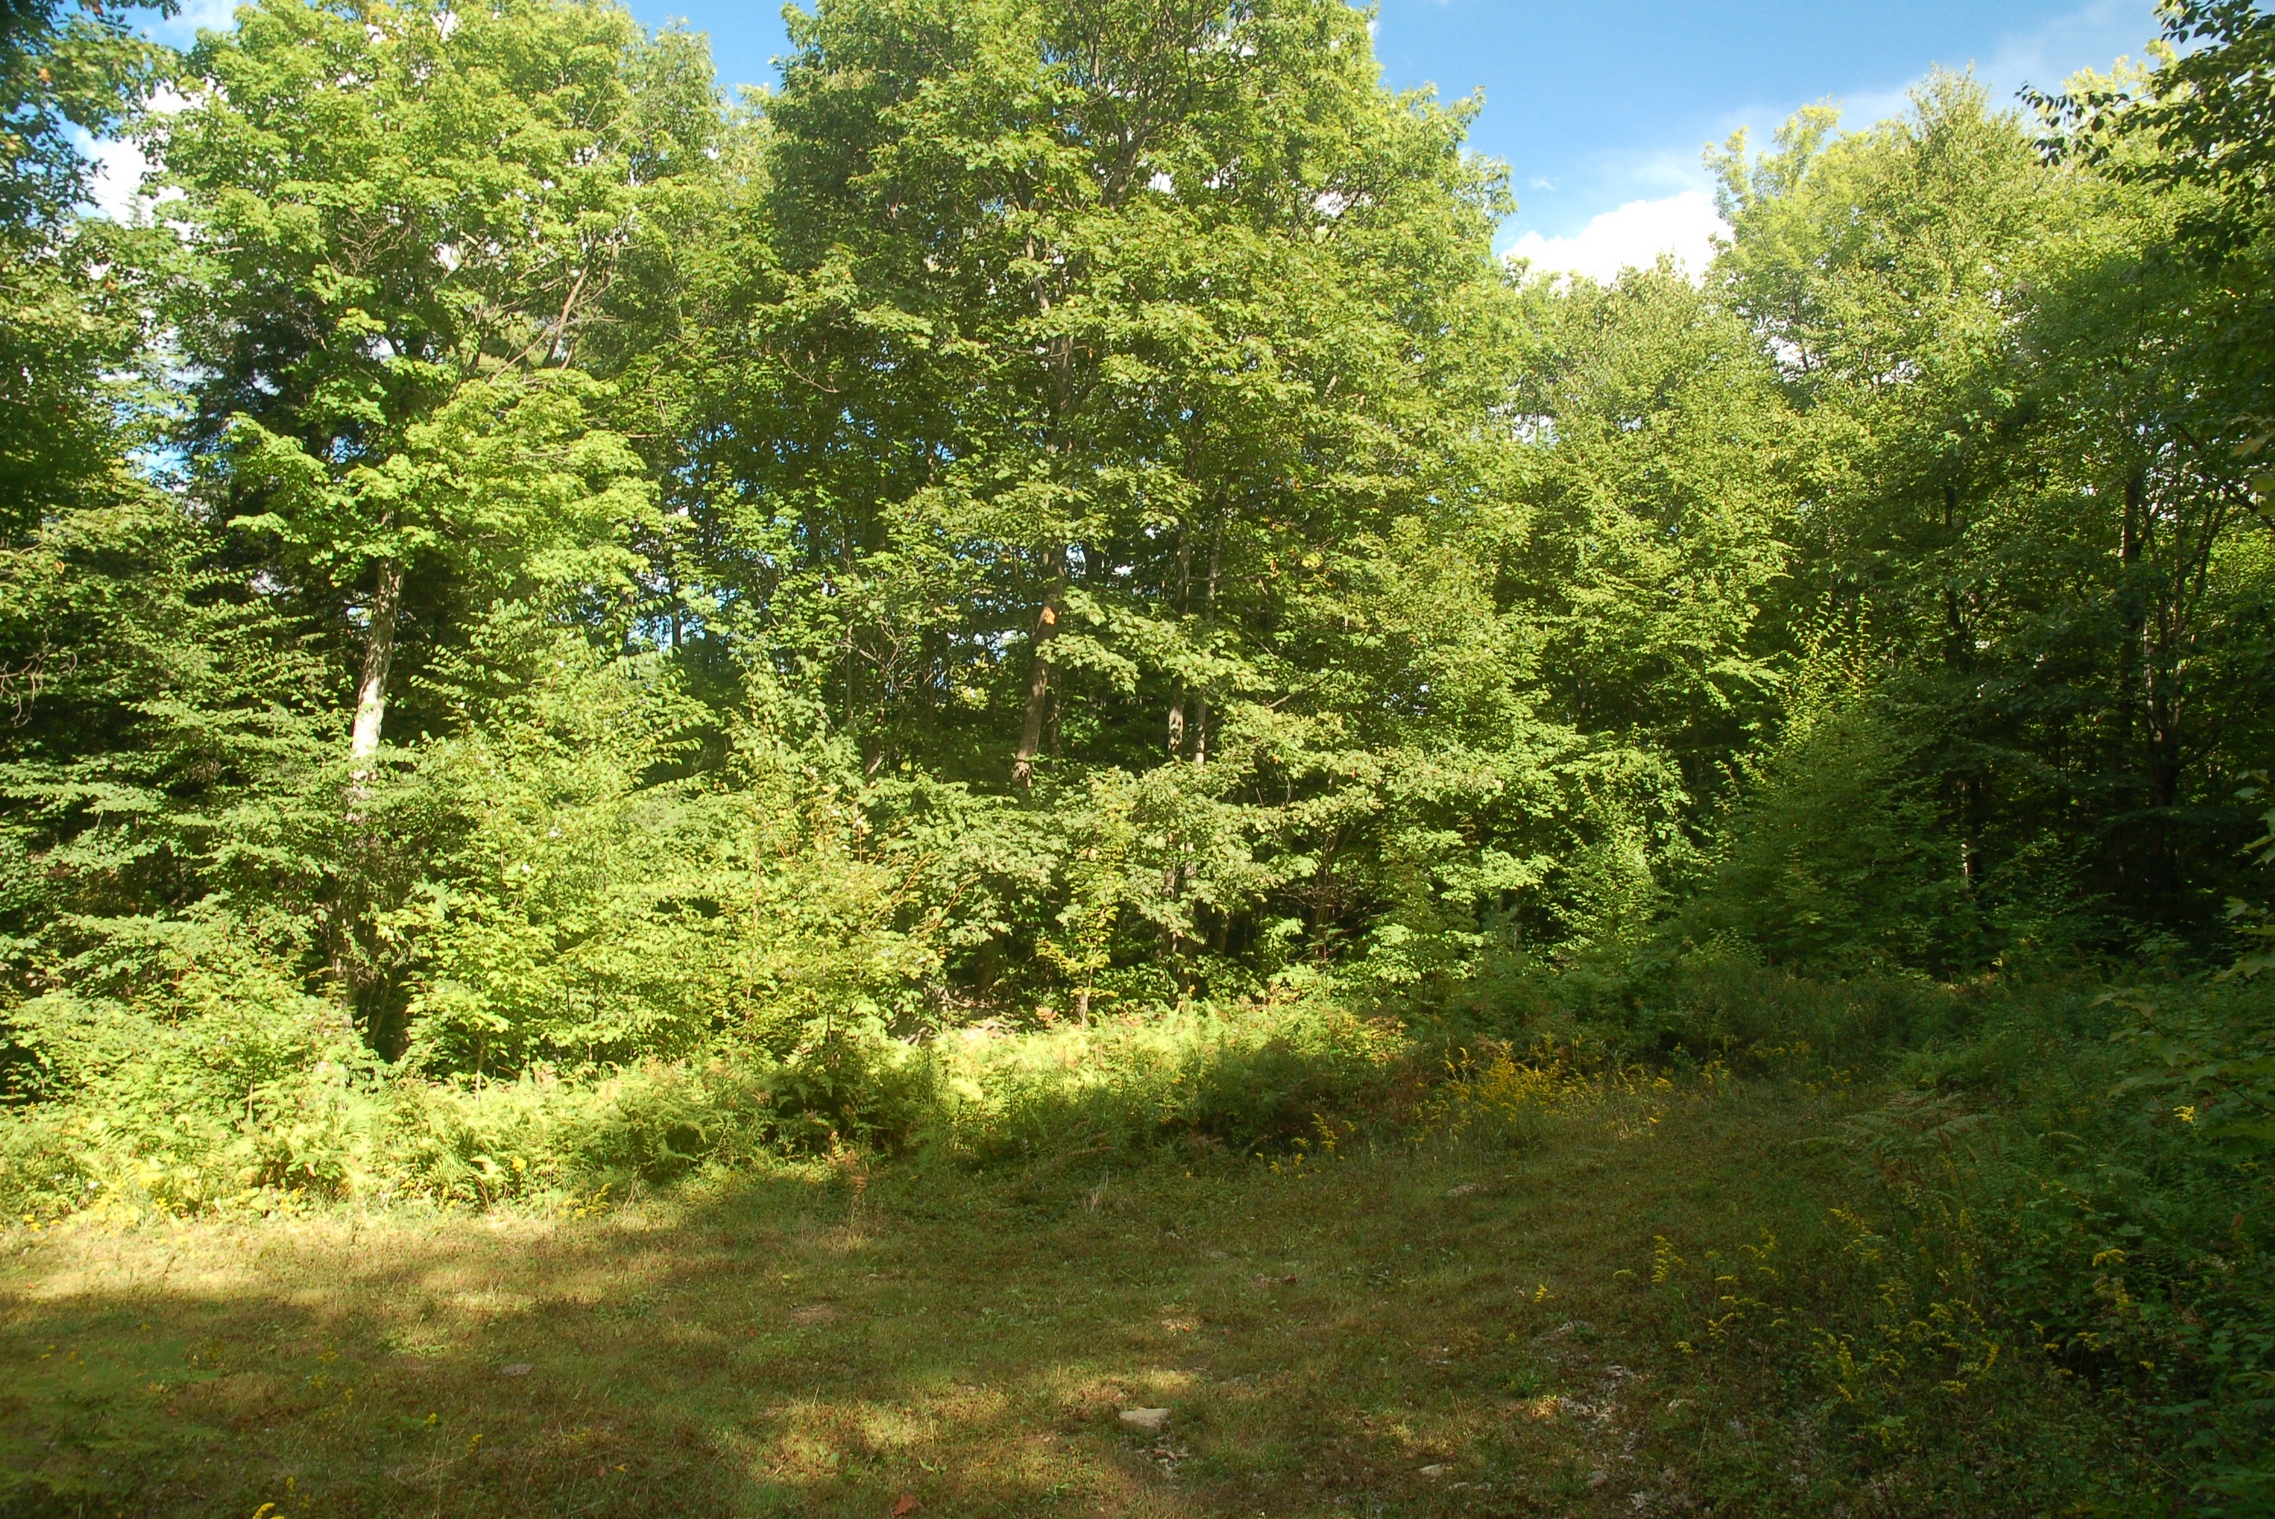 Land for Sale at Lot 74-1 Nh Route 140, Gilmanton Gilmanton, New Hampshire, 03237 United States